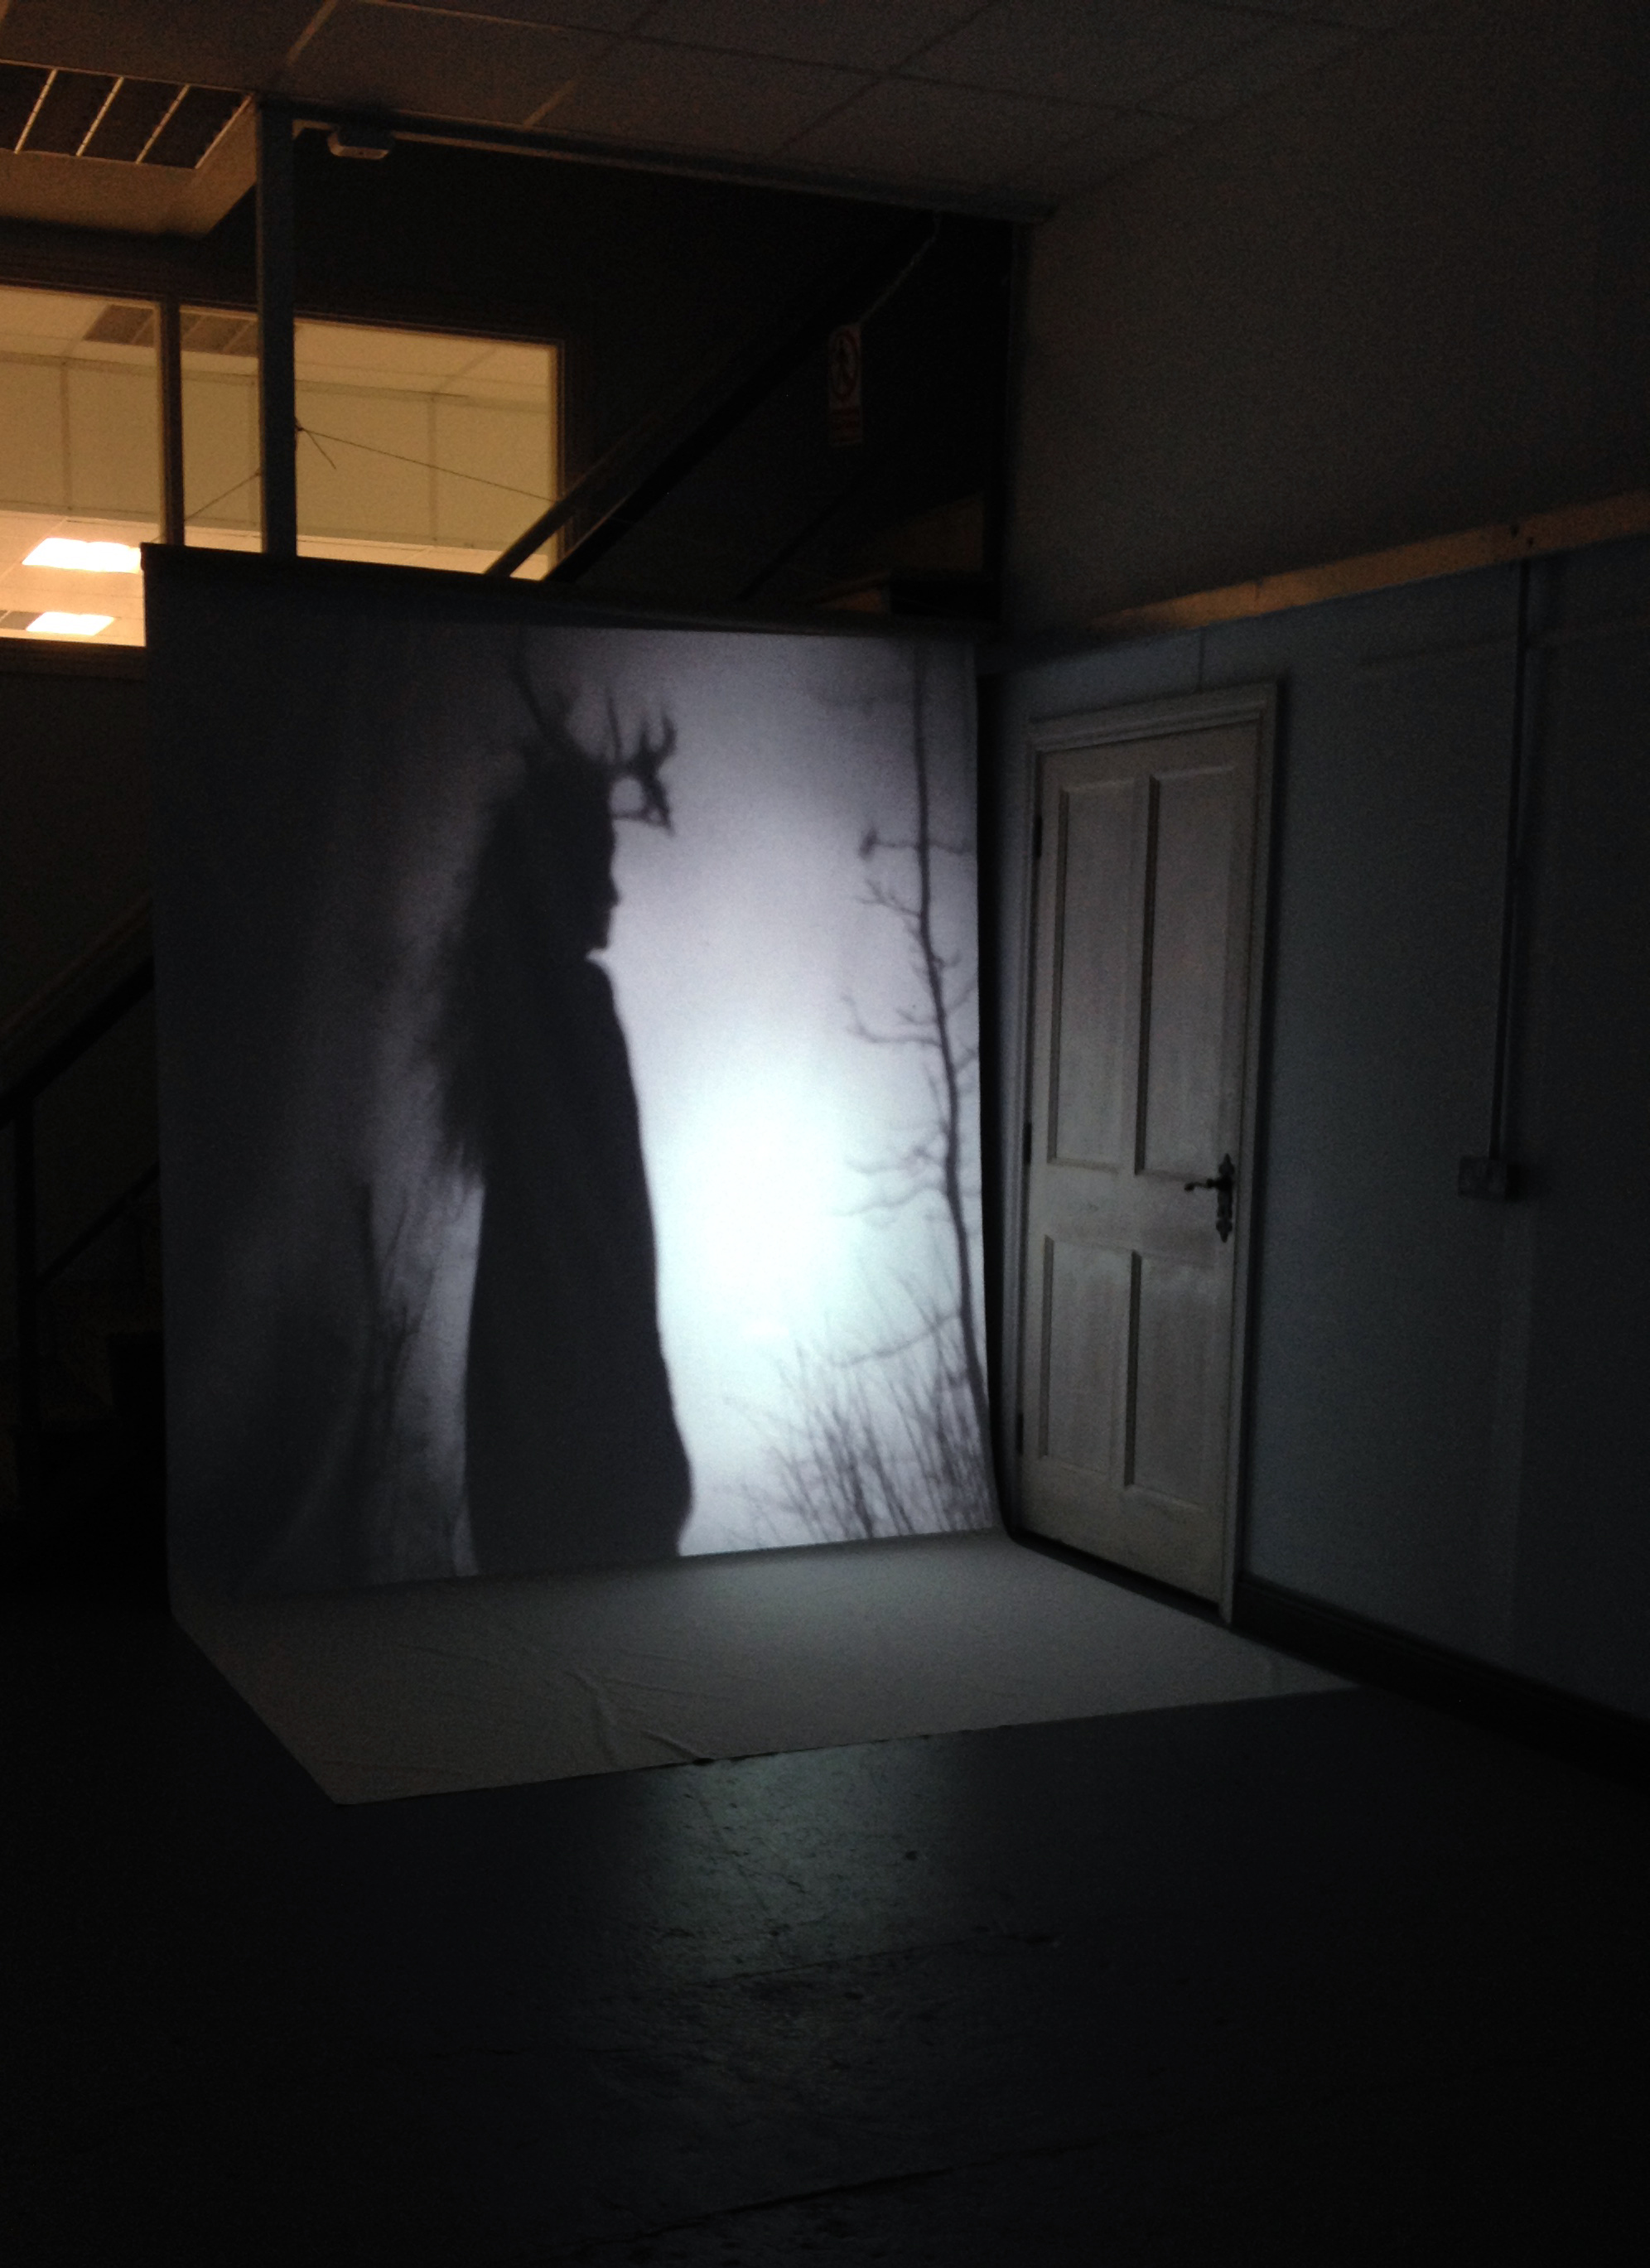 Testing video projection mapping for installation, Spring 2019